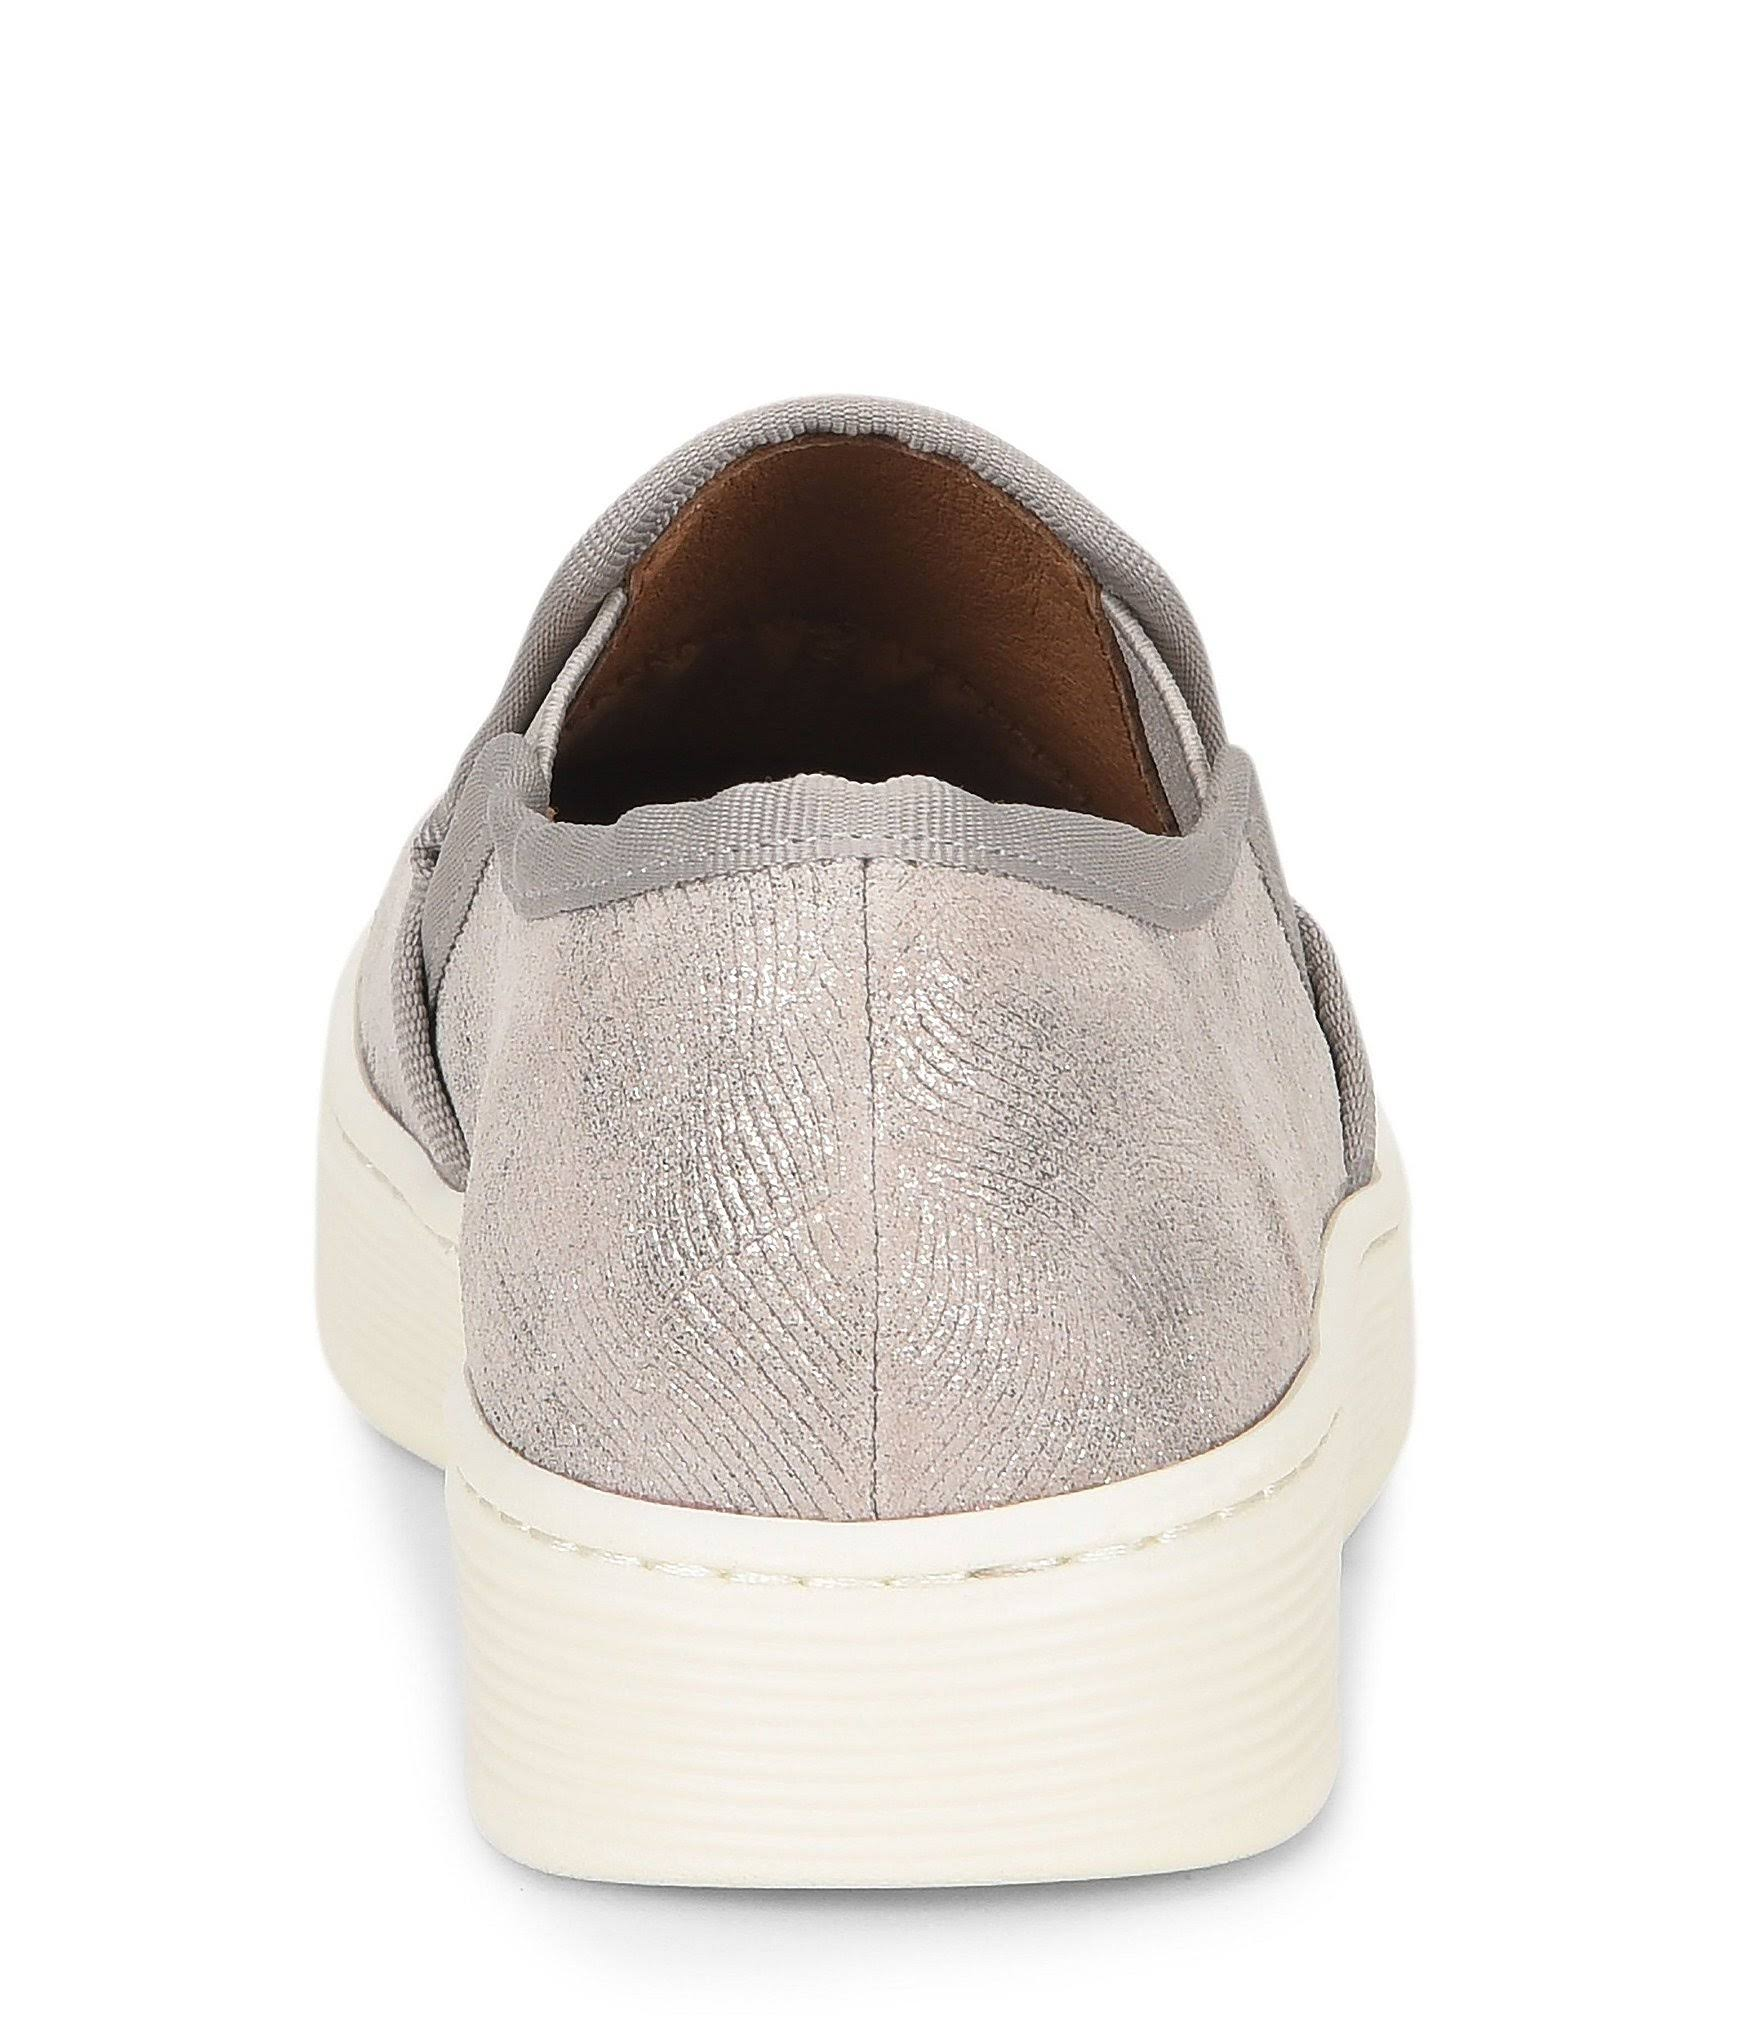 On 9m Leather Goat Womens Slip movida Grey Mist Sneakers Somers Grey Metallic Sofft platino qEw0IT